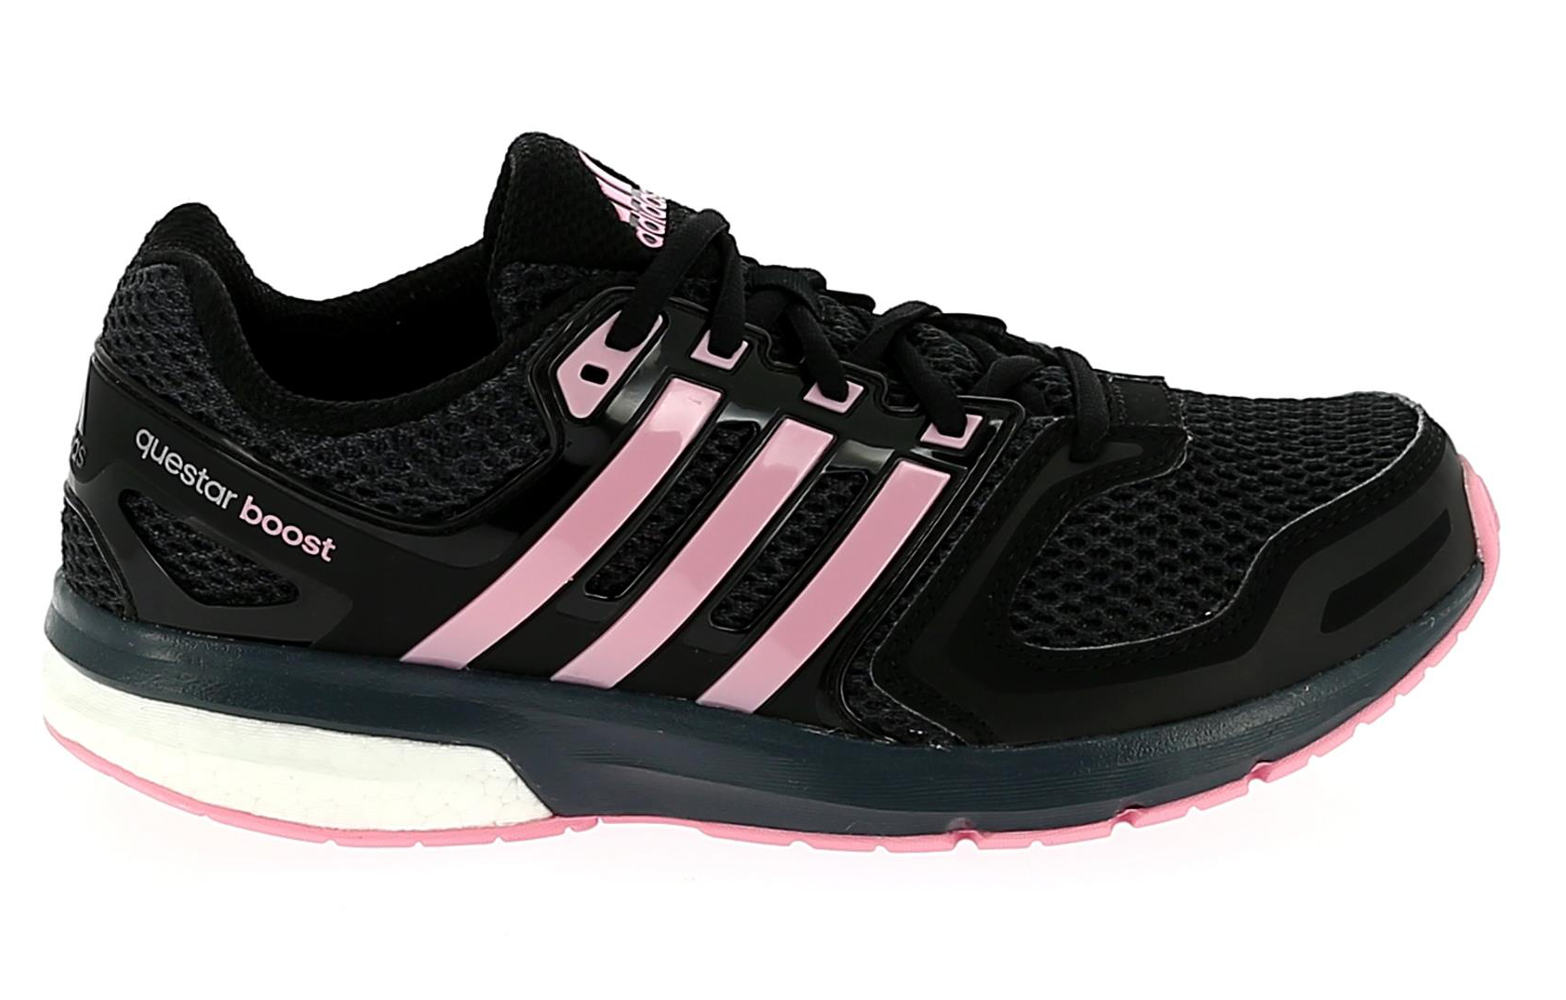 adidas questar boost womens running shoes black pink. Black Bedroom Furniture Sets. Home Design Ideas